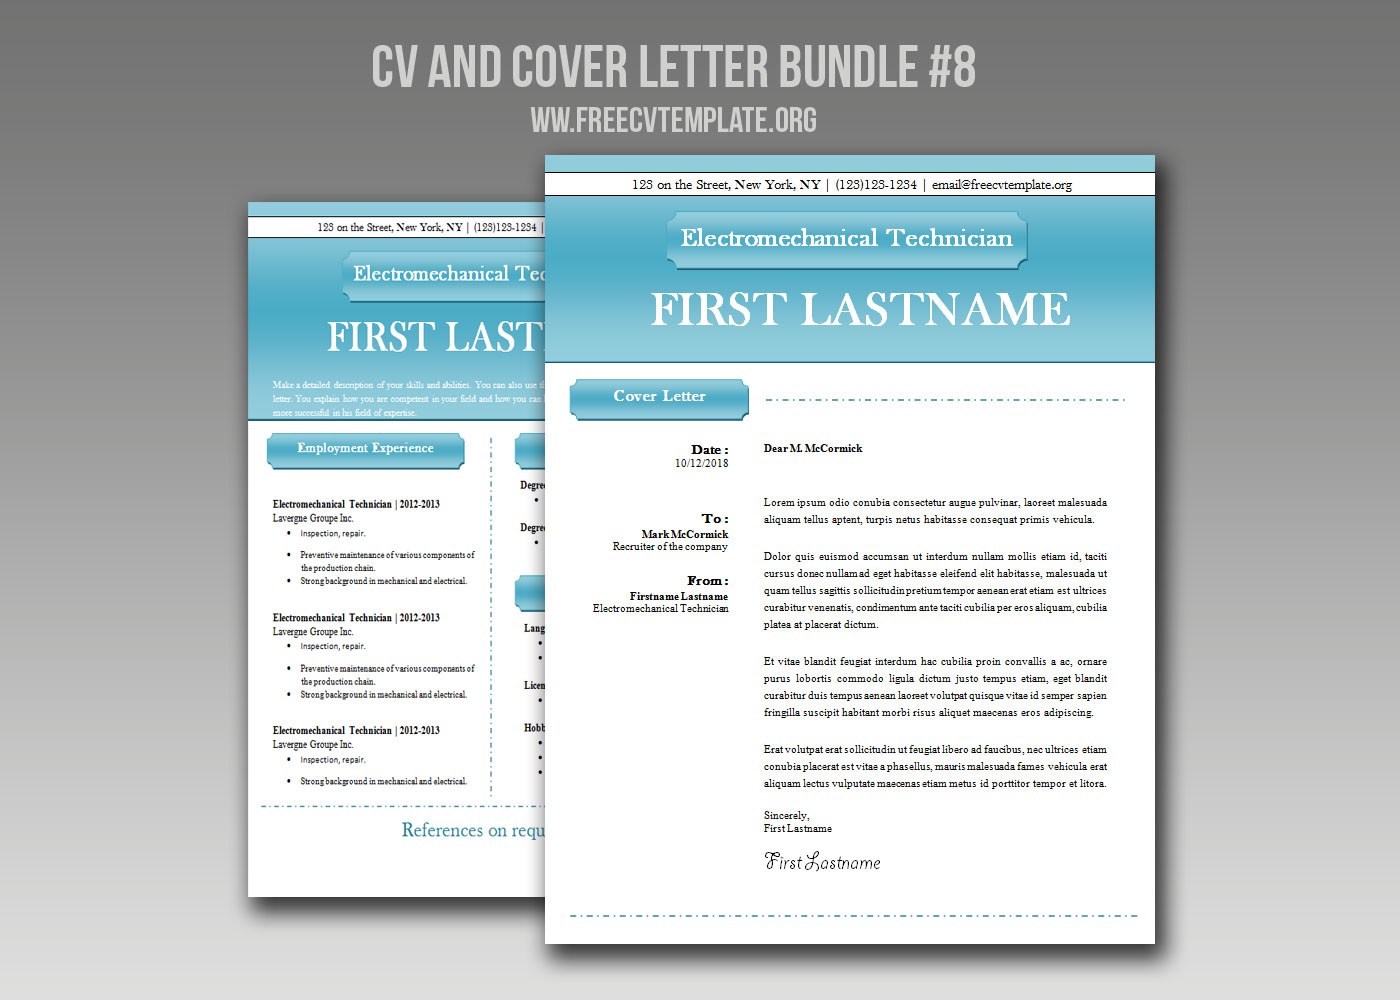 CV and Cover Letter Bundle #8